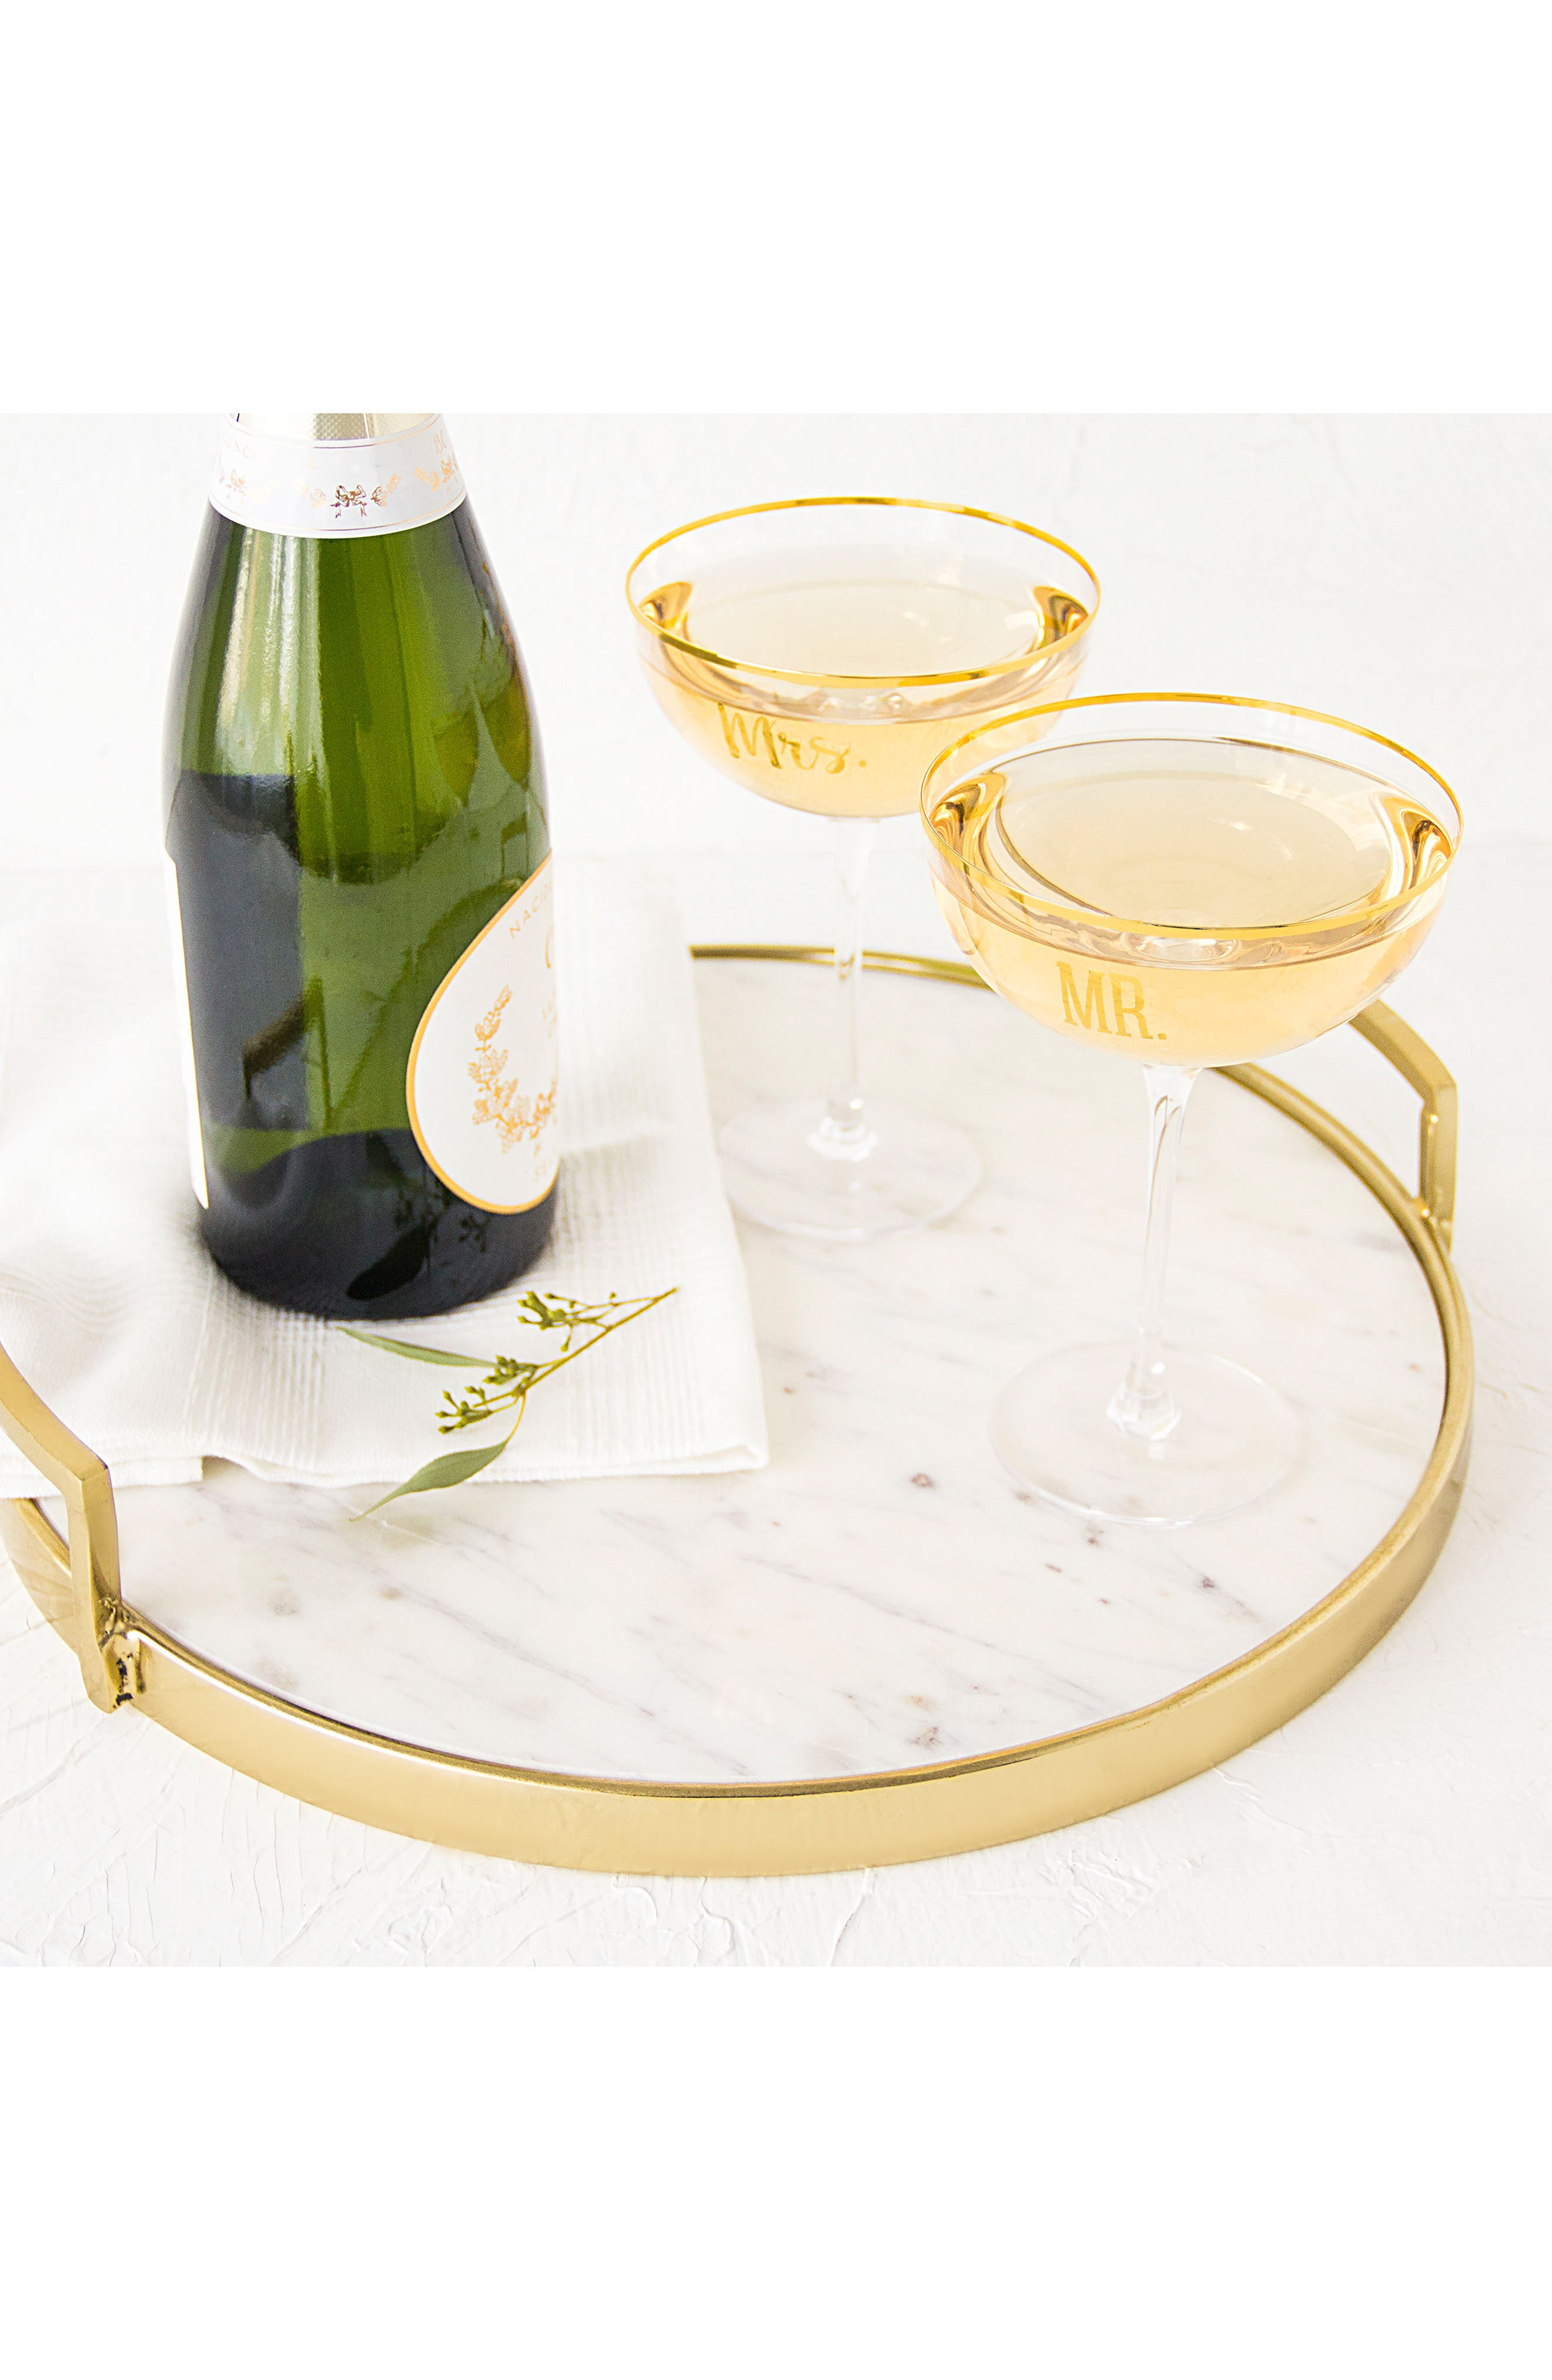 Mr. & Mrs. Set of 2 Champagne Coupe Toasting Glasses,                             Alternate thumbnail 7, color,                             Gold